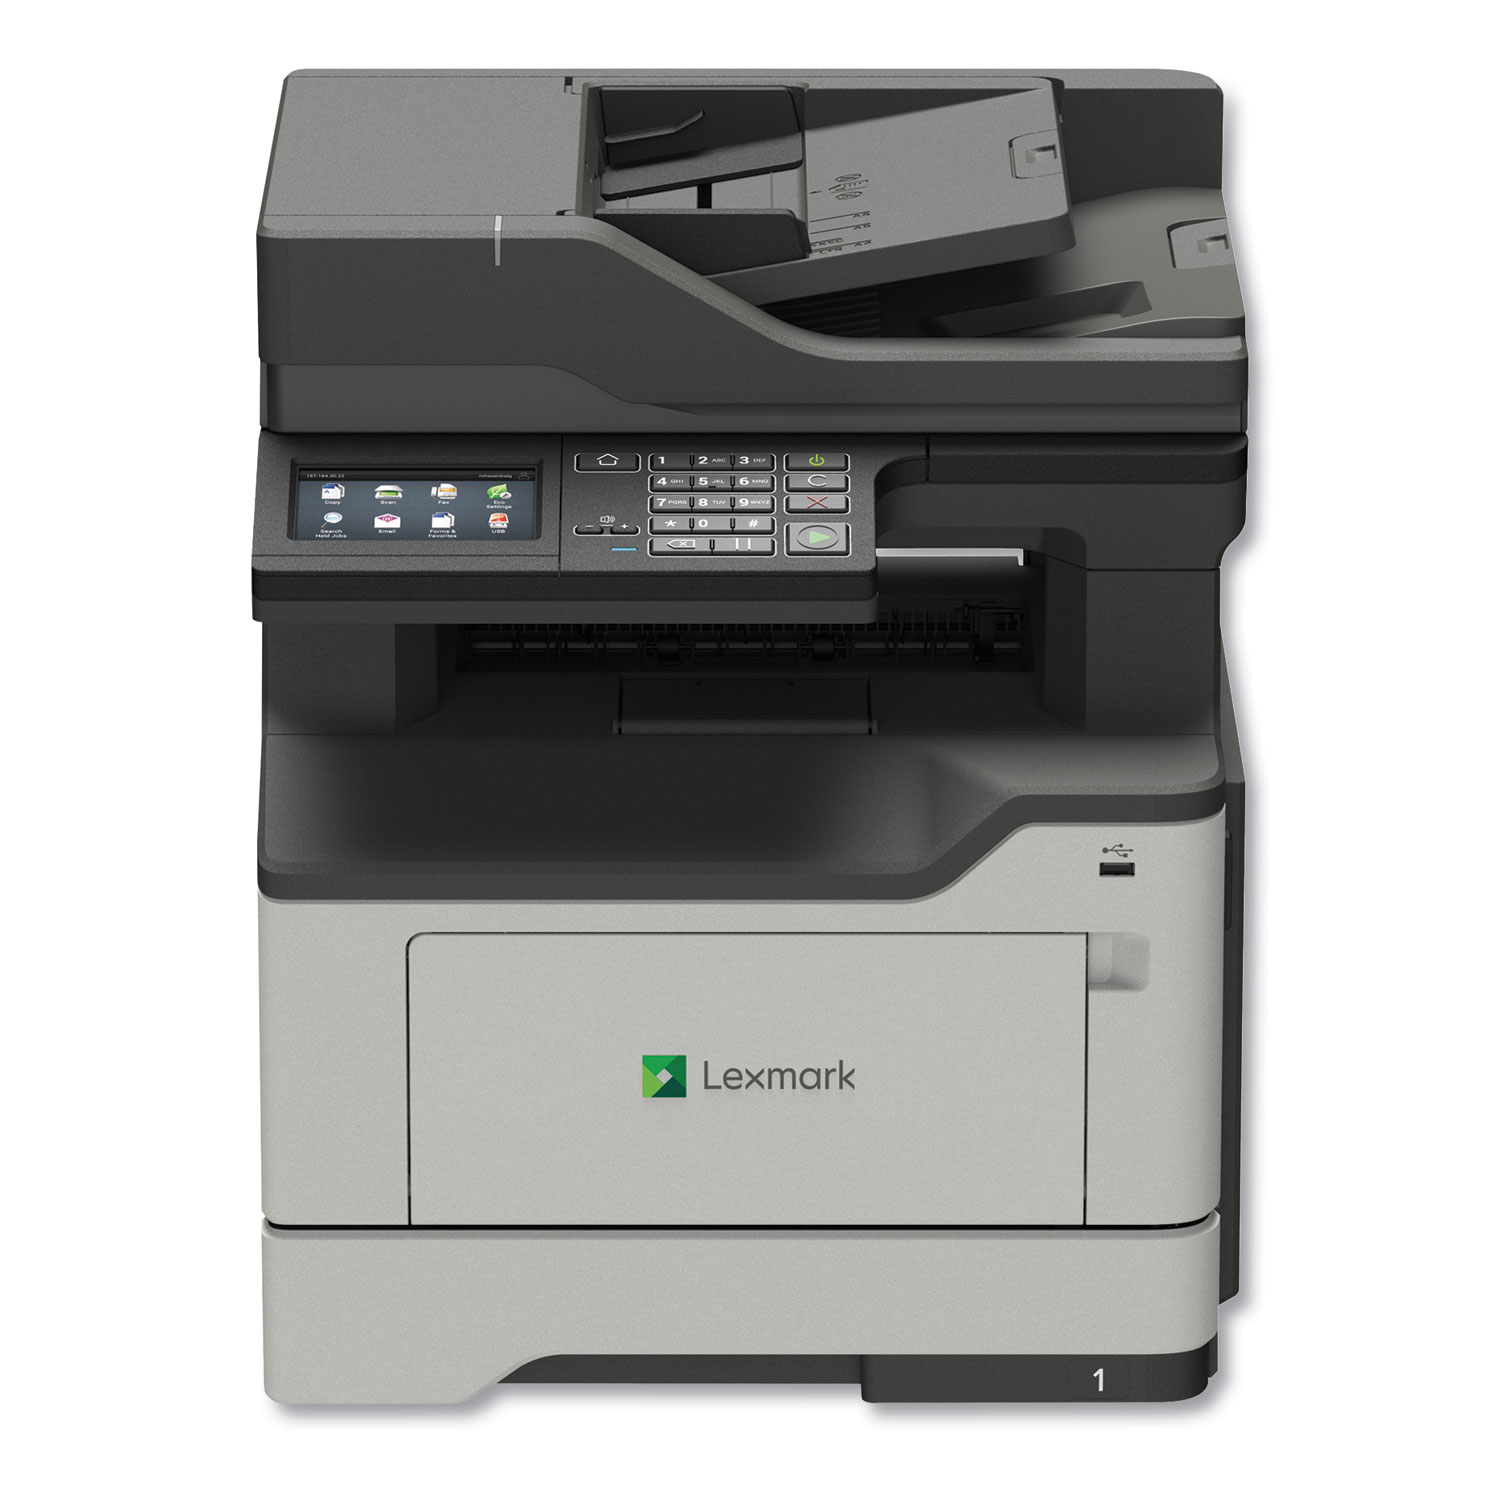 MB2442adwe Wireless Laser Printer